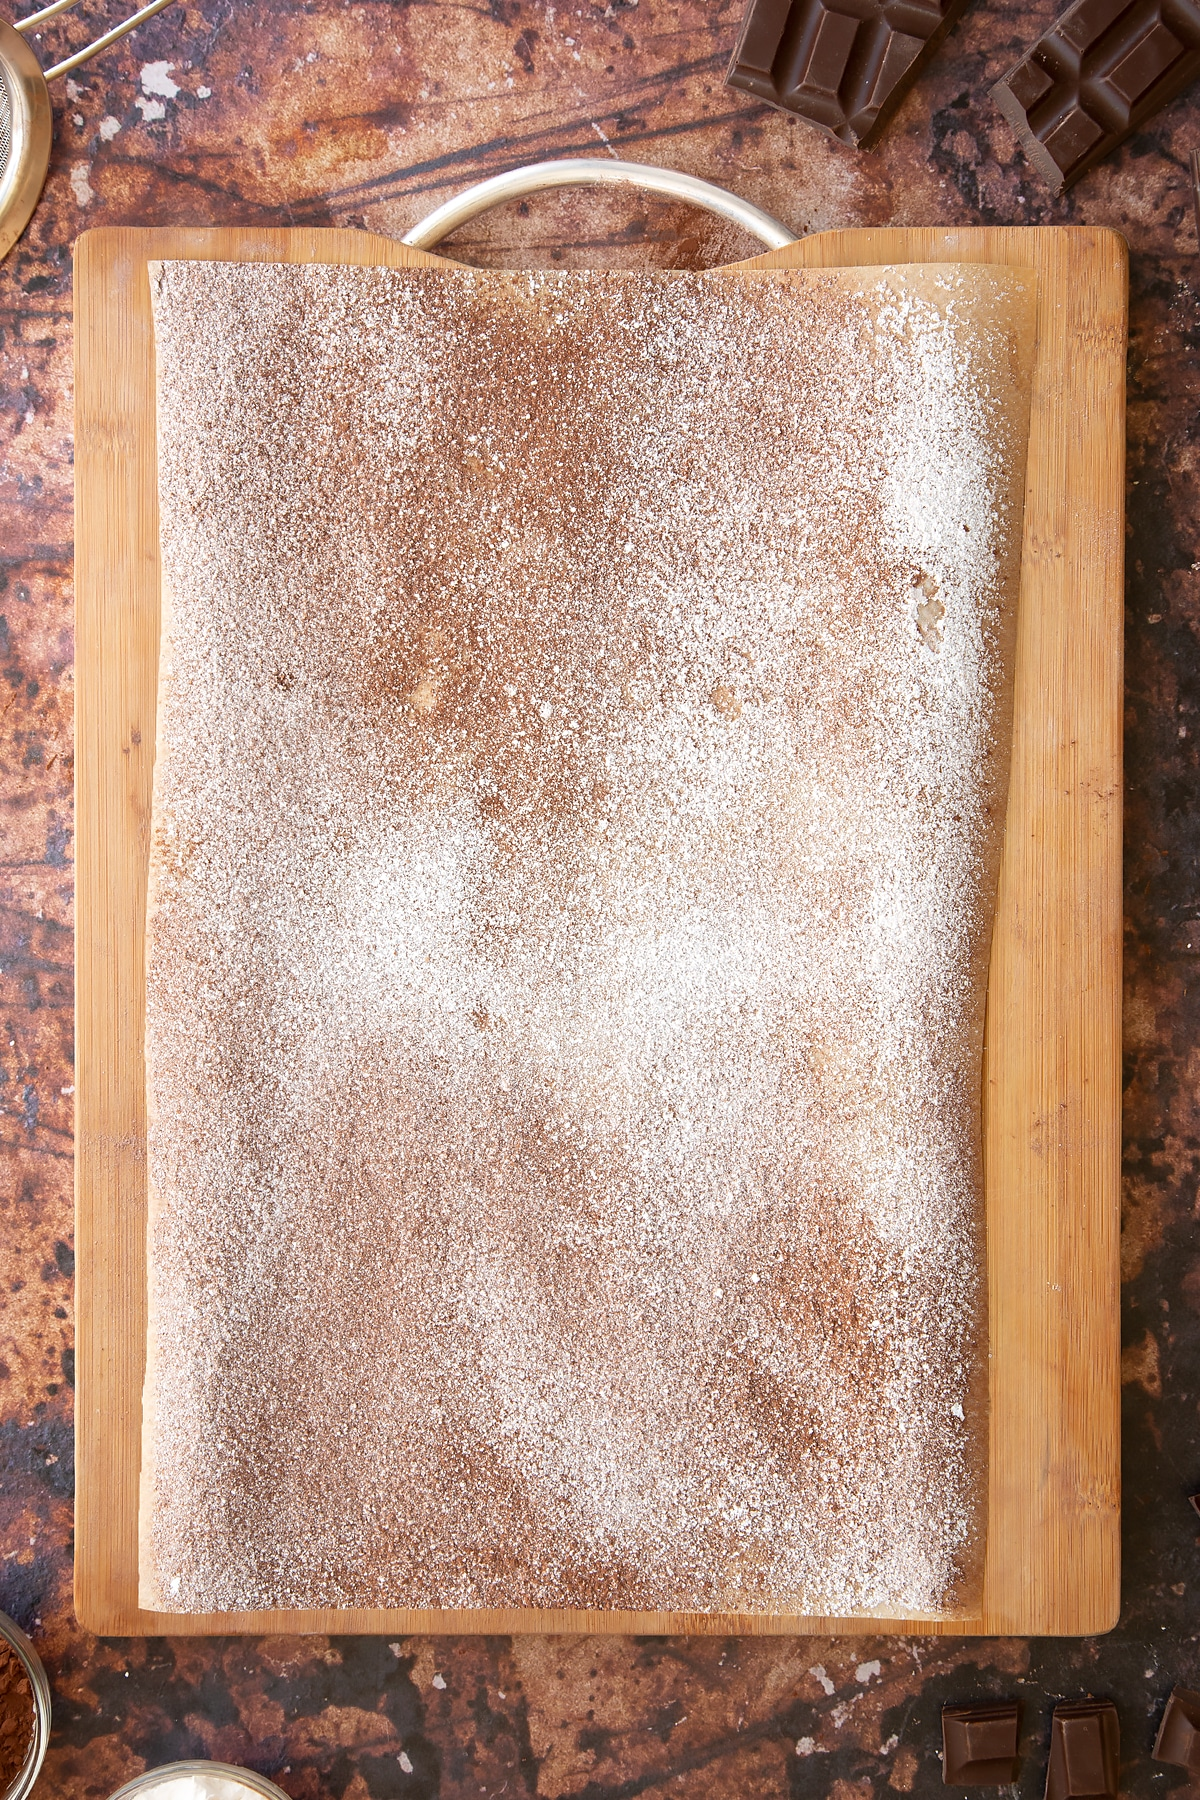 Wooden board topped with a piece of baking paper, dusted with cocoa and icing sugar.